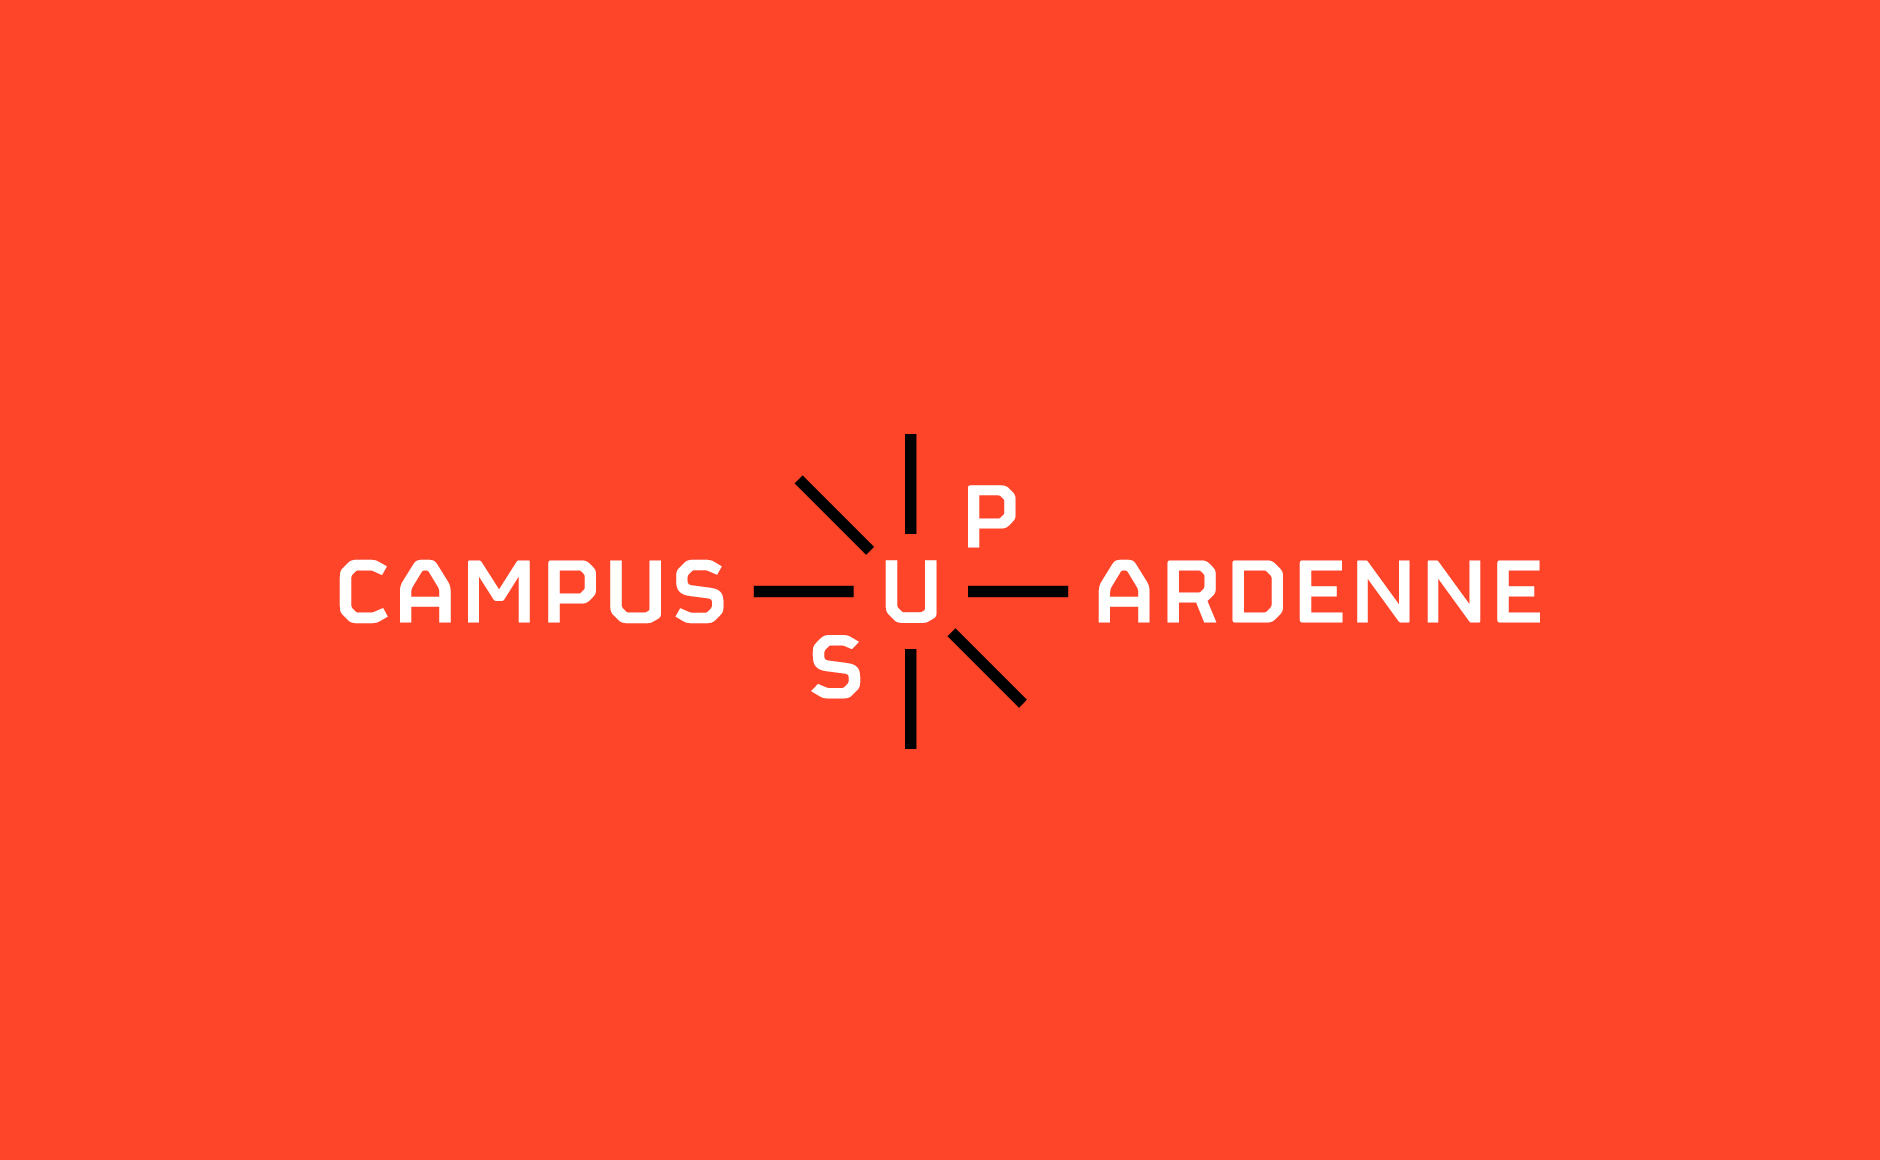 logo campus sup ardenne orange